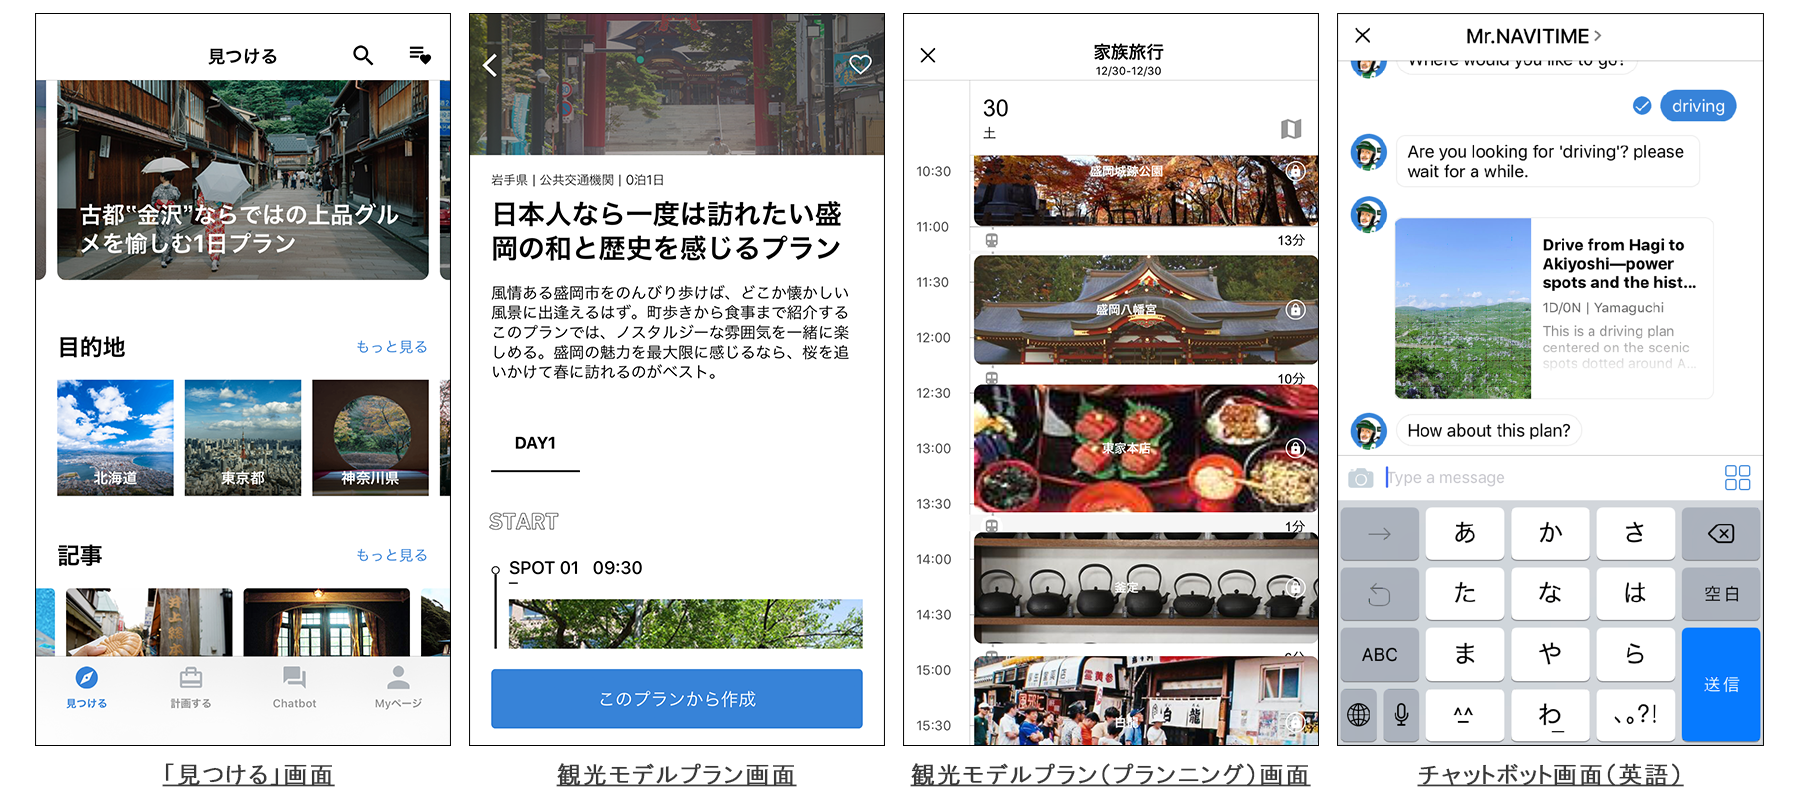 http://corporate.navitime.co.jp/topics/094c602a801064c5622502992f9562f7aa90d487.png